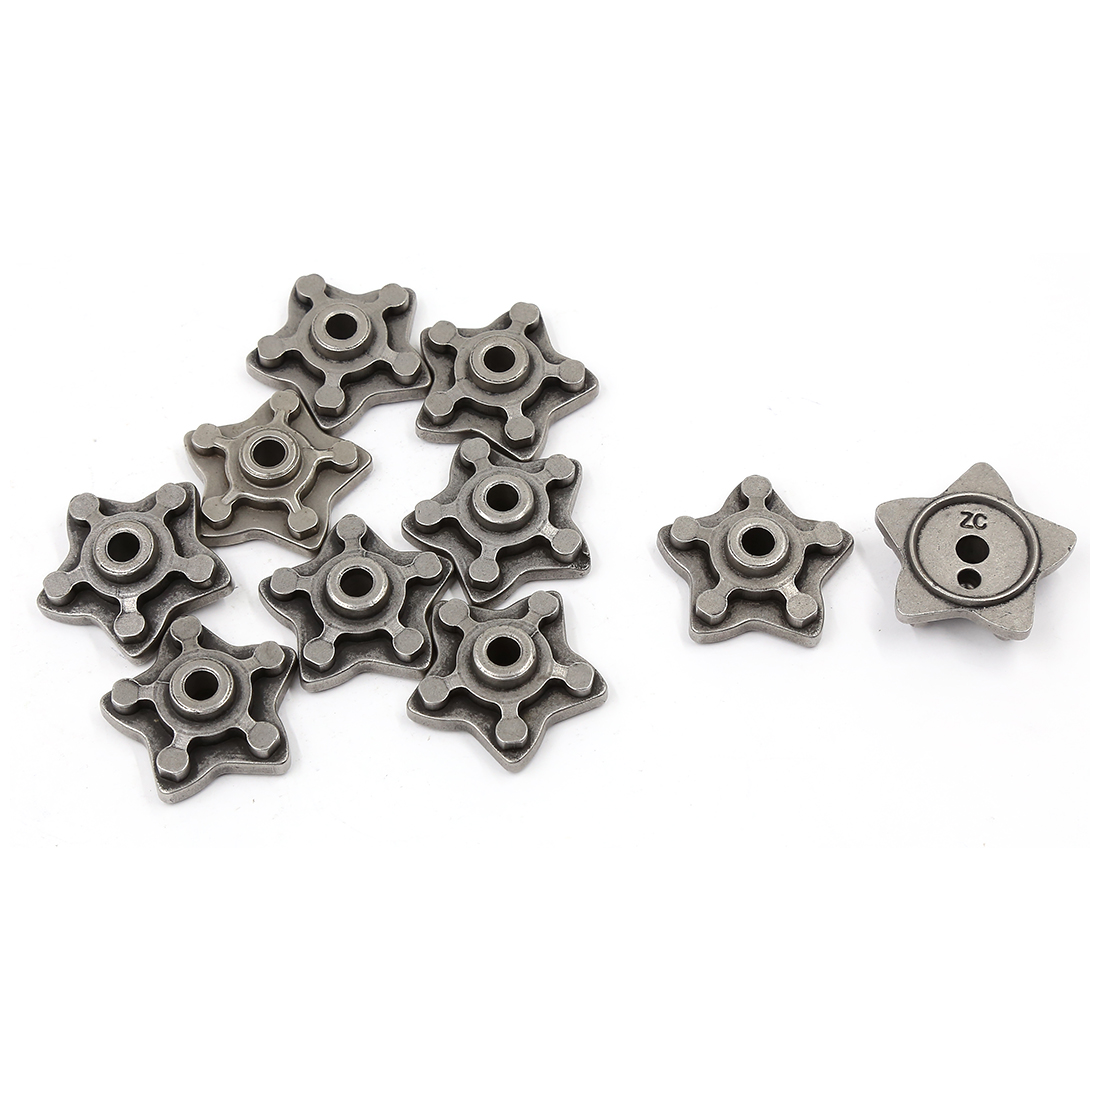 10 Pcs Gray Metal Star Shaped Motorcycle Engine Speed Gear Shift Cam for CG125